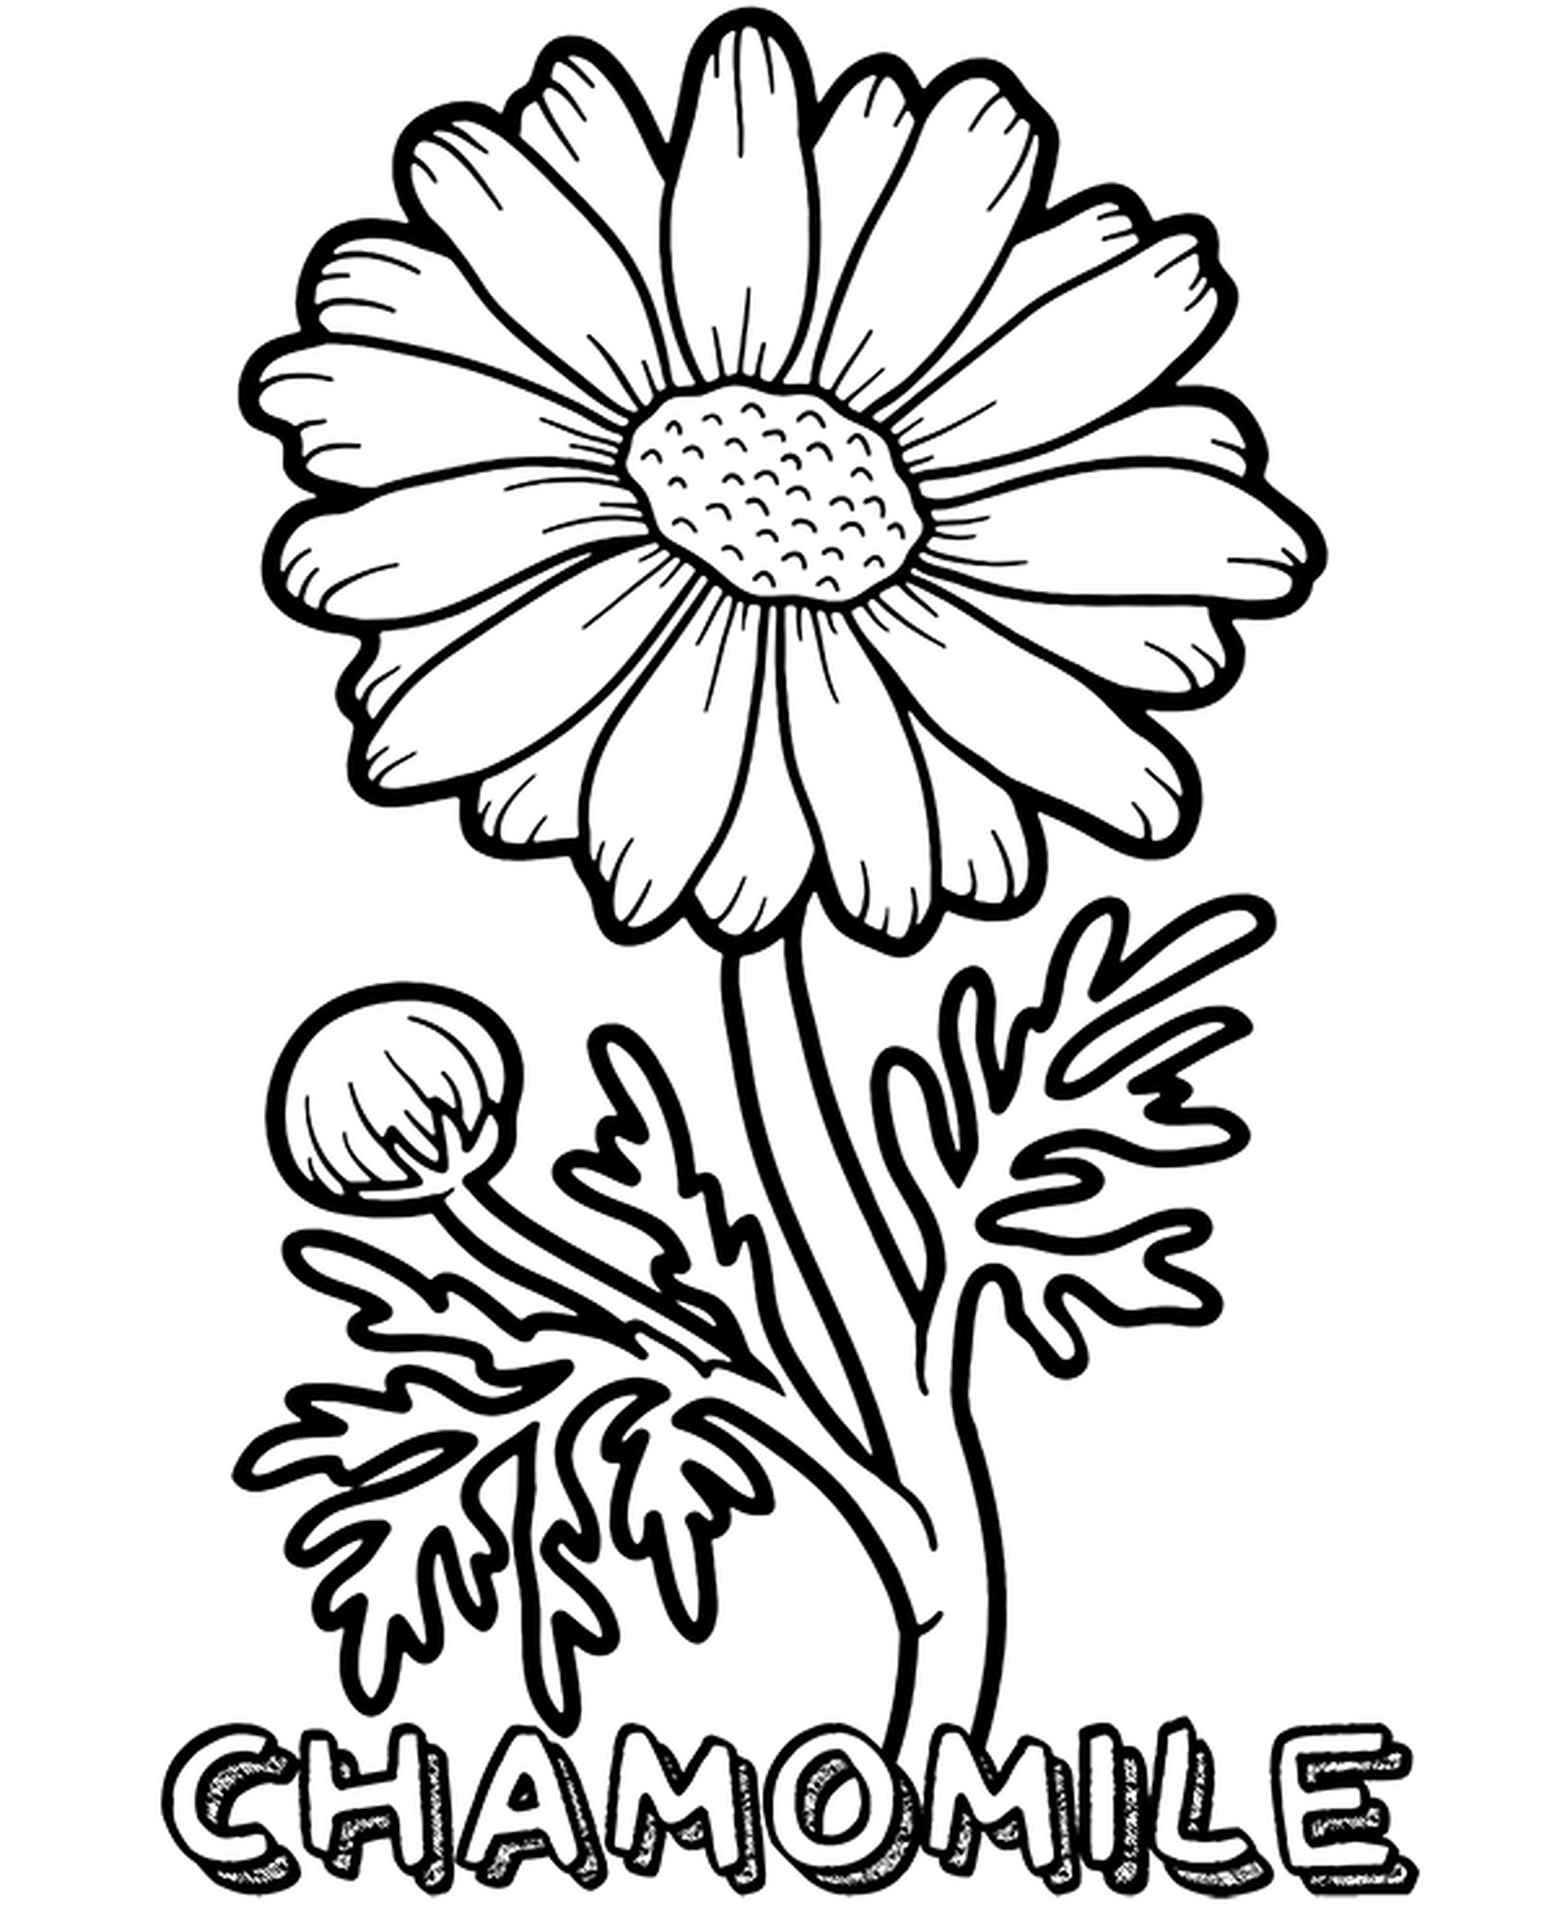 Coloring Page Pharmaceutical Chamomile